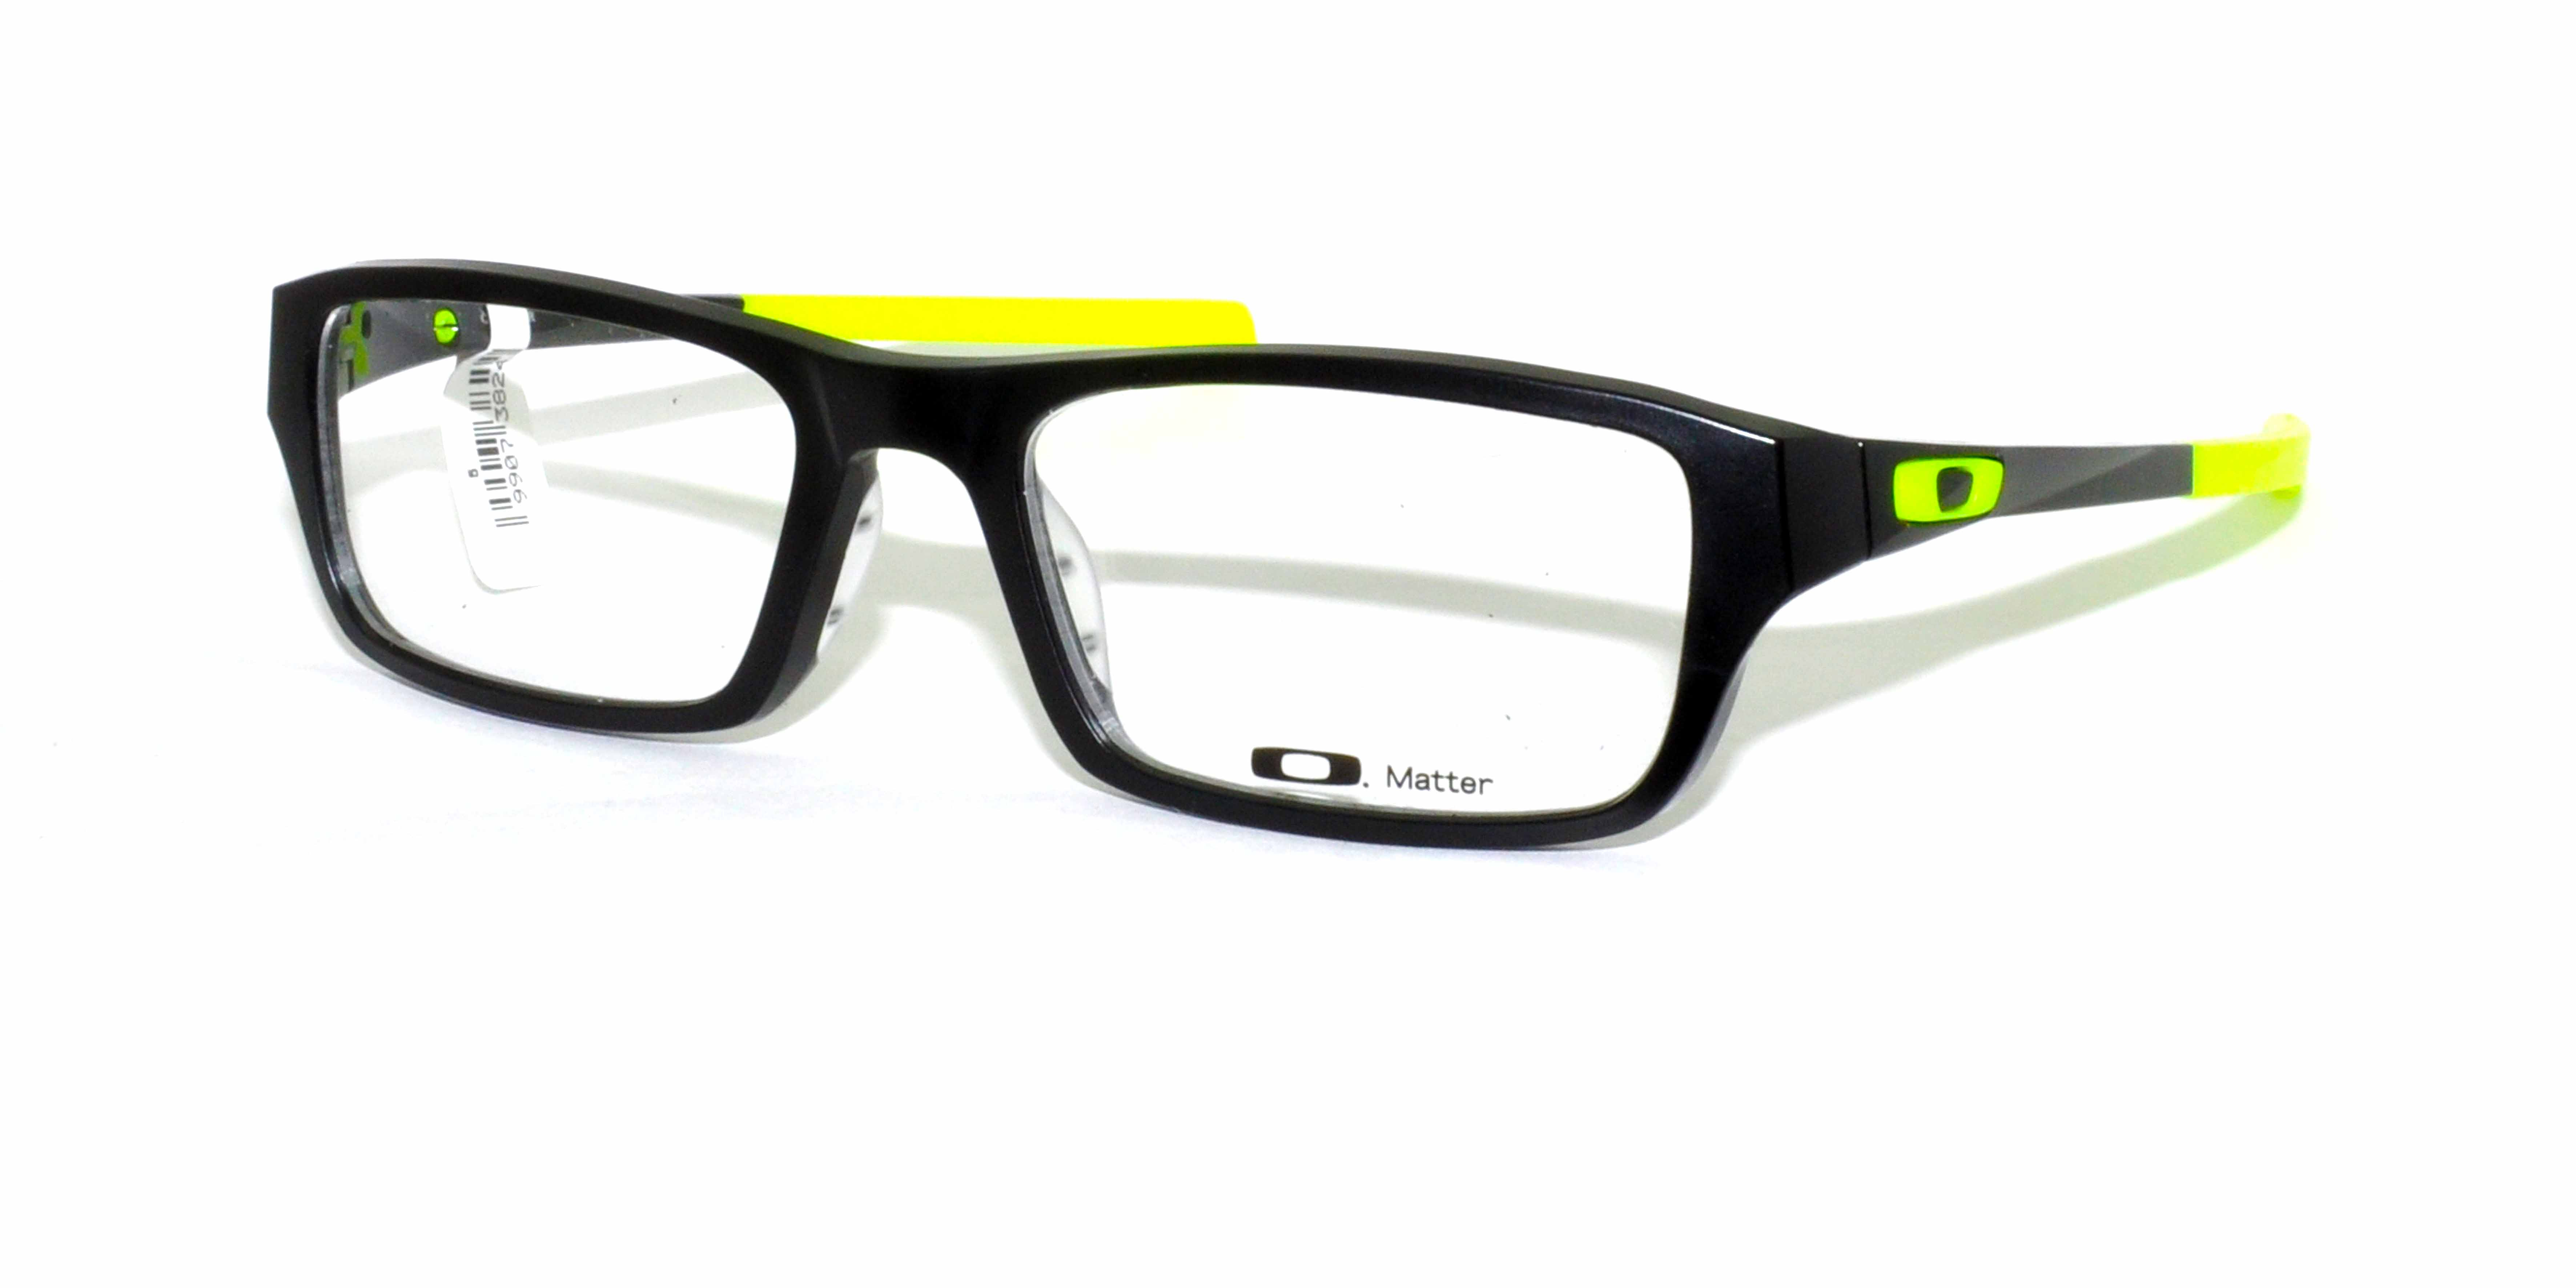 oakley glasses frame warranty. oakley prescription glasses ...